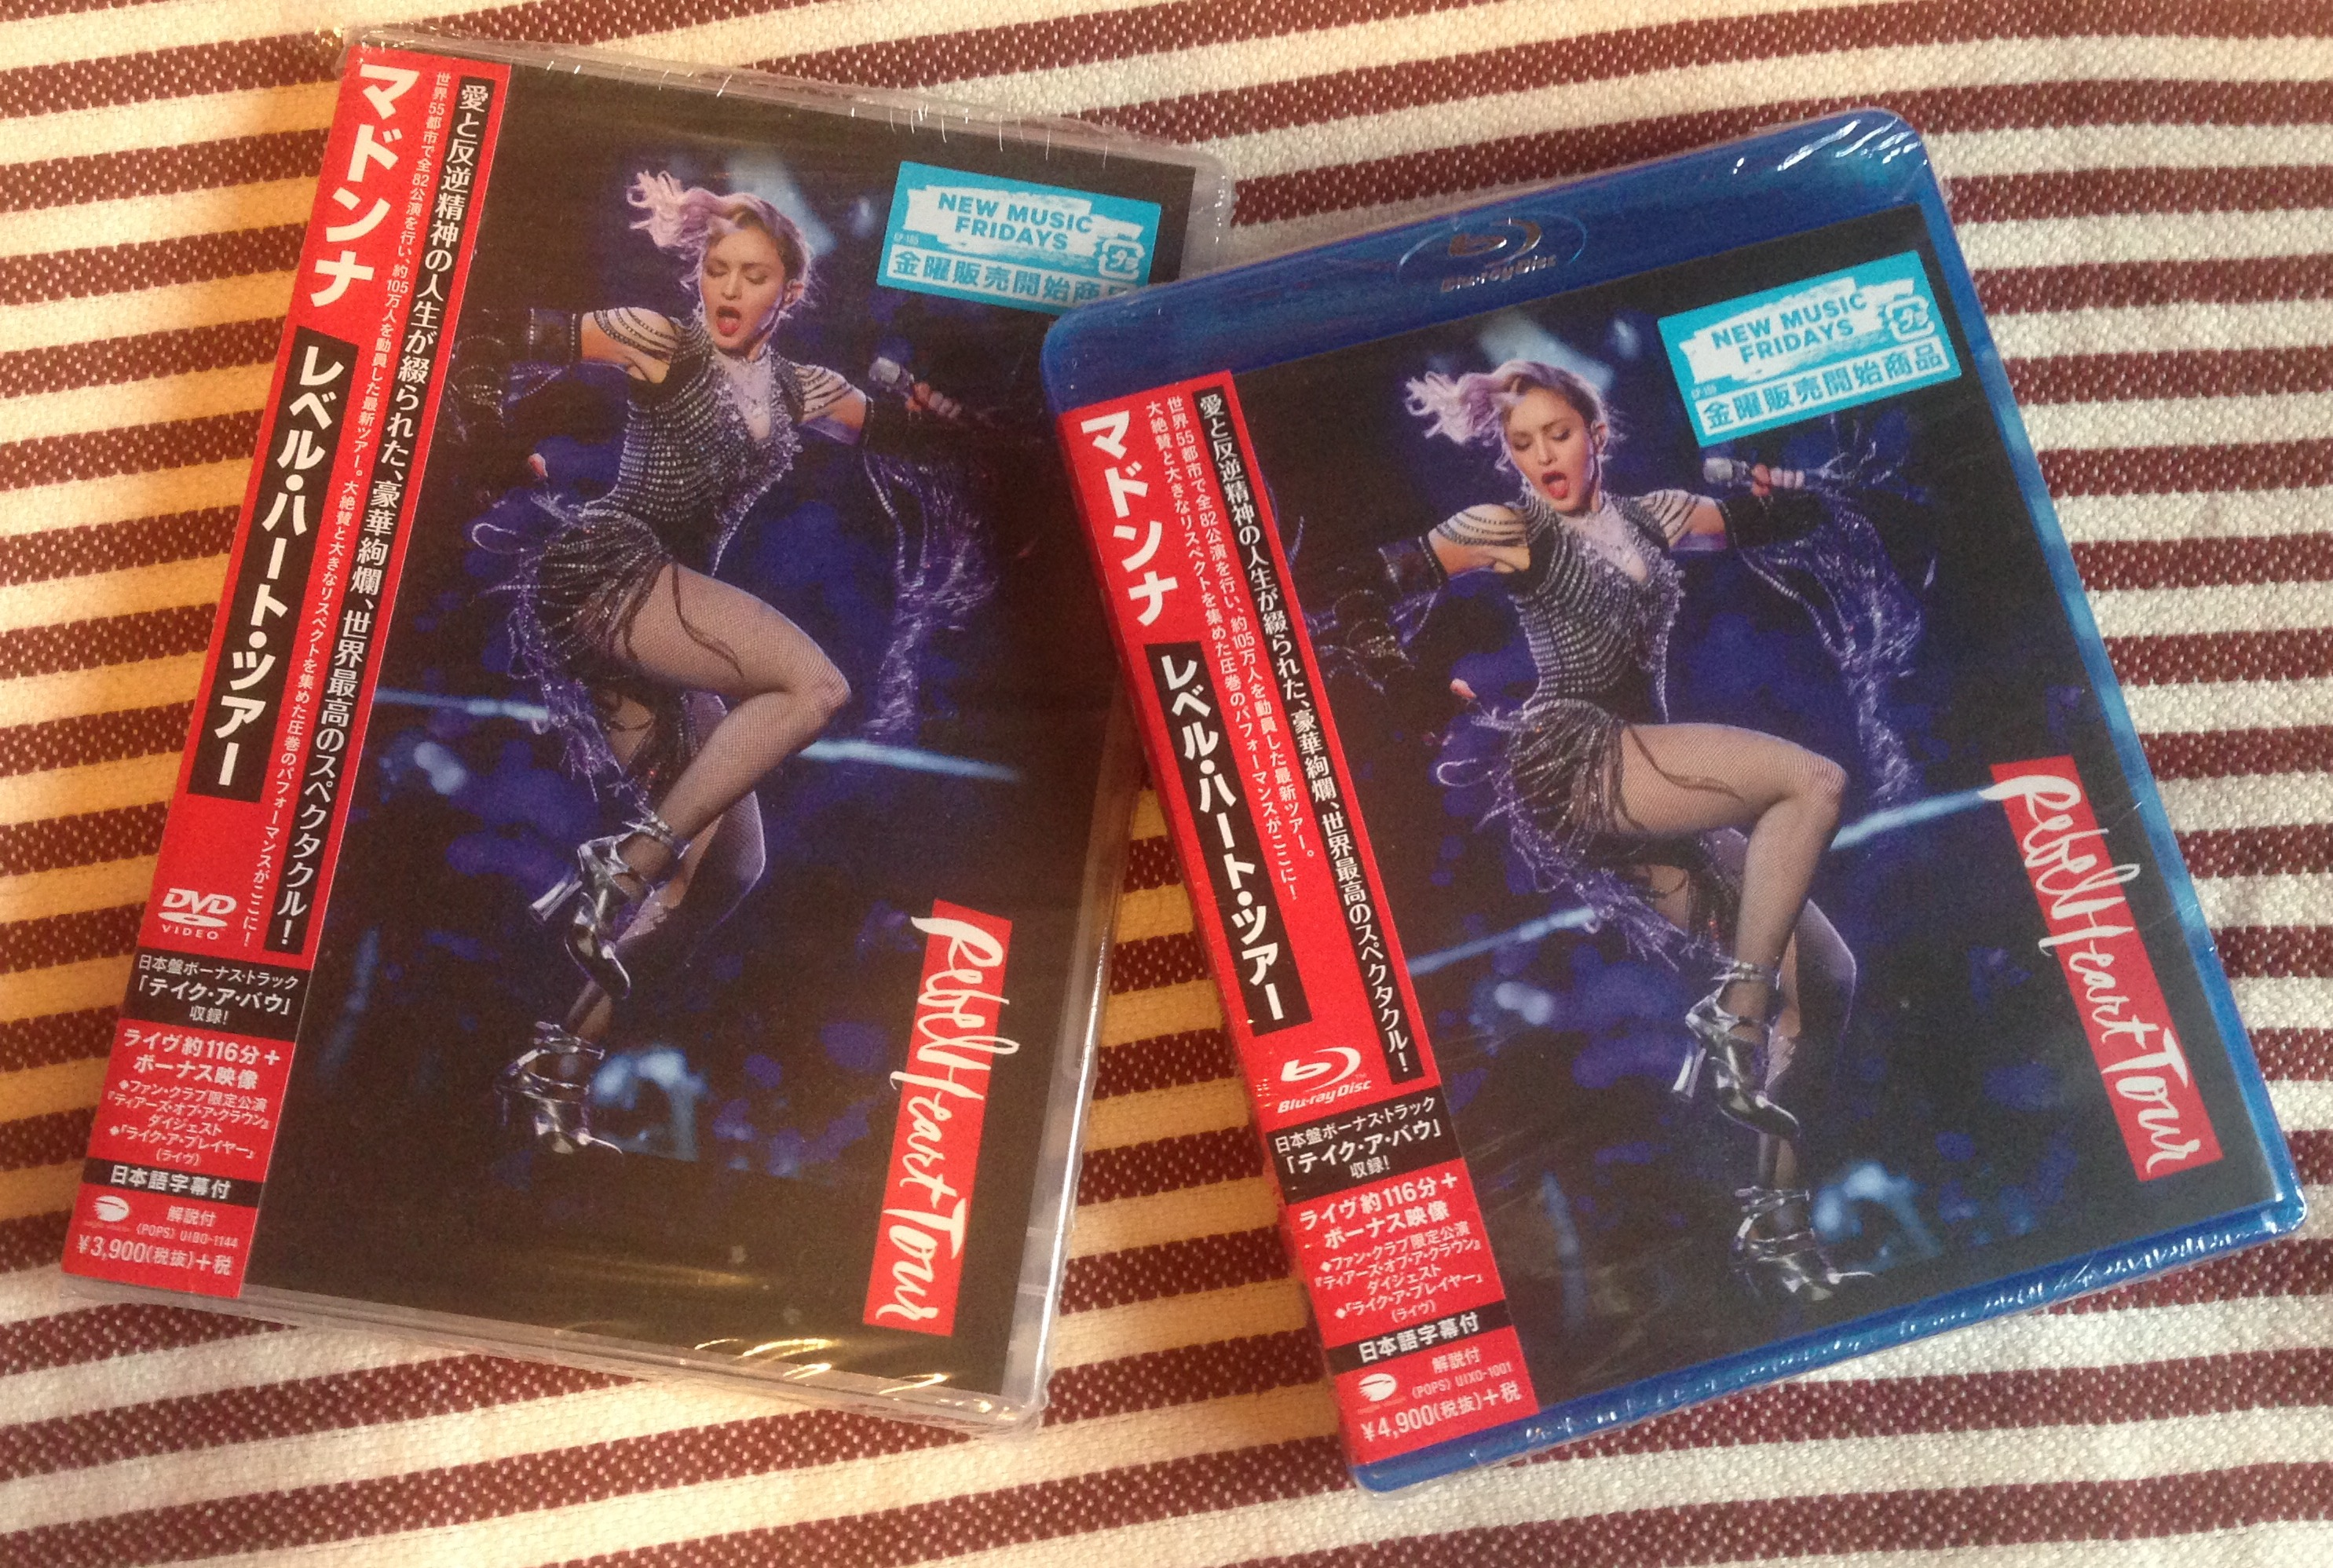 Rebel Heart Tour Japanese Home Video